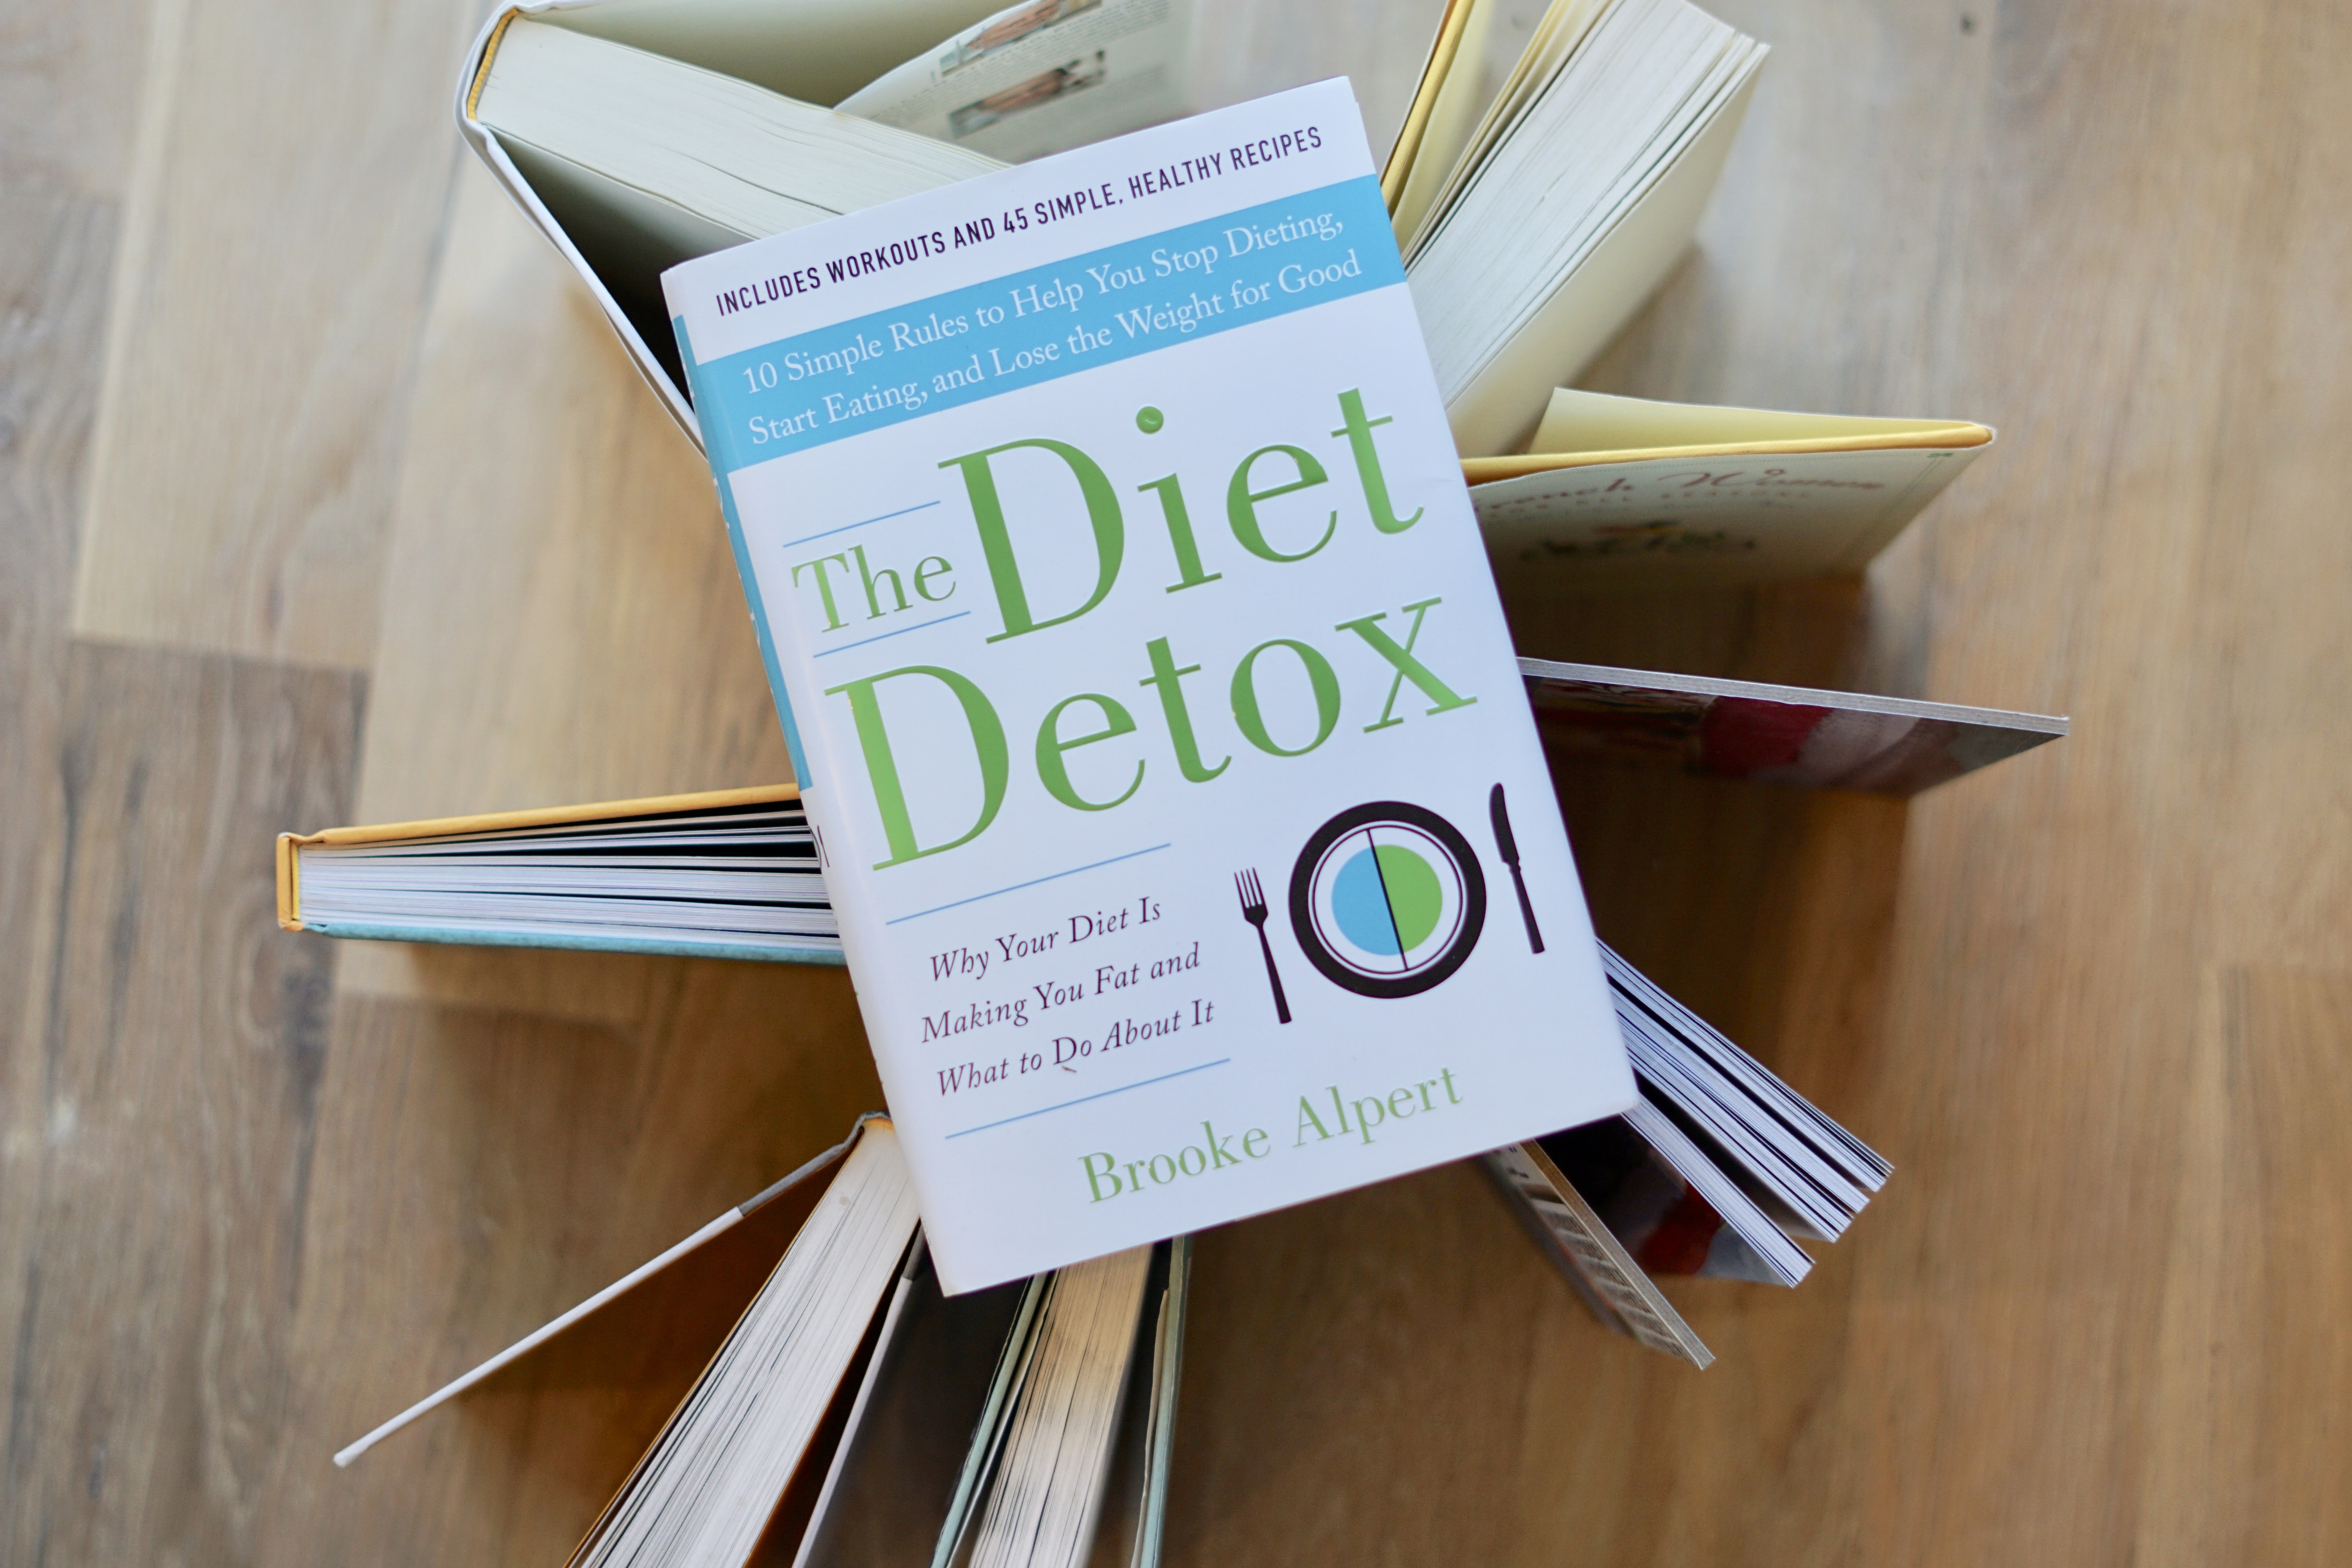 The Diet Detox book on open books